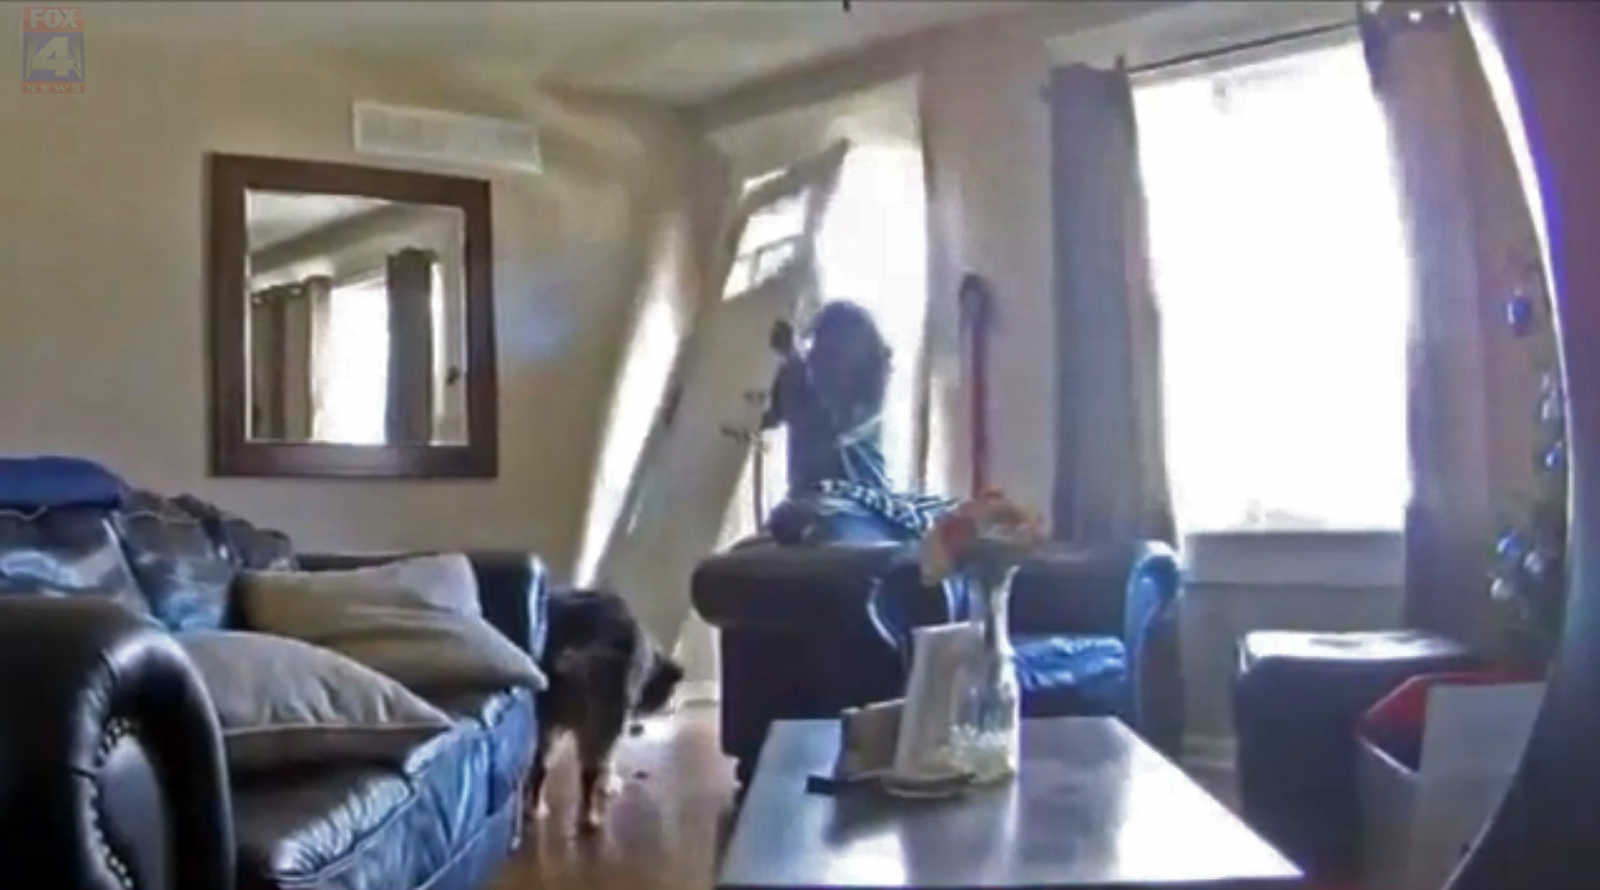 IoT security camera footage of a break-in